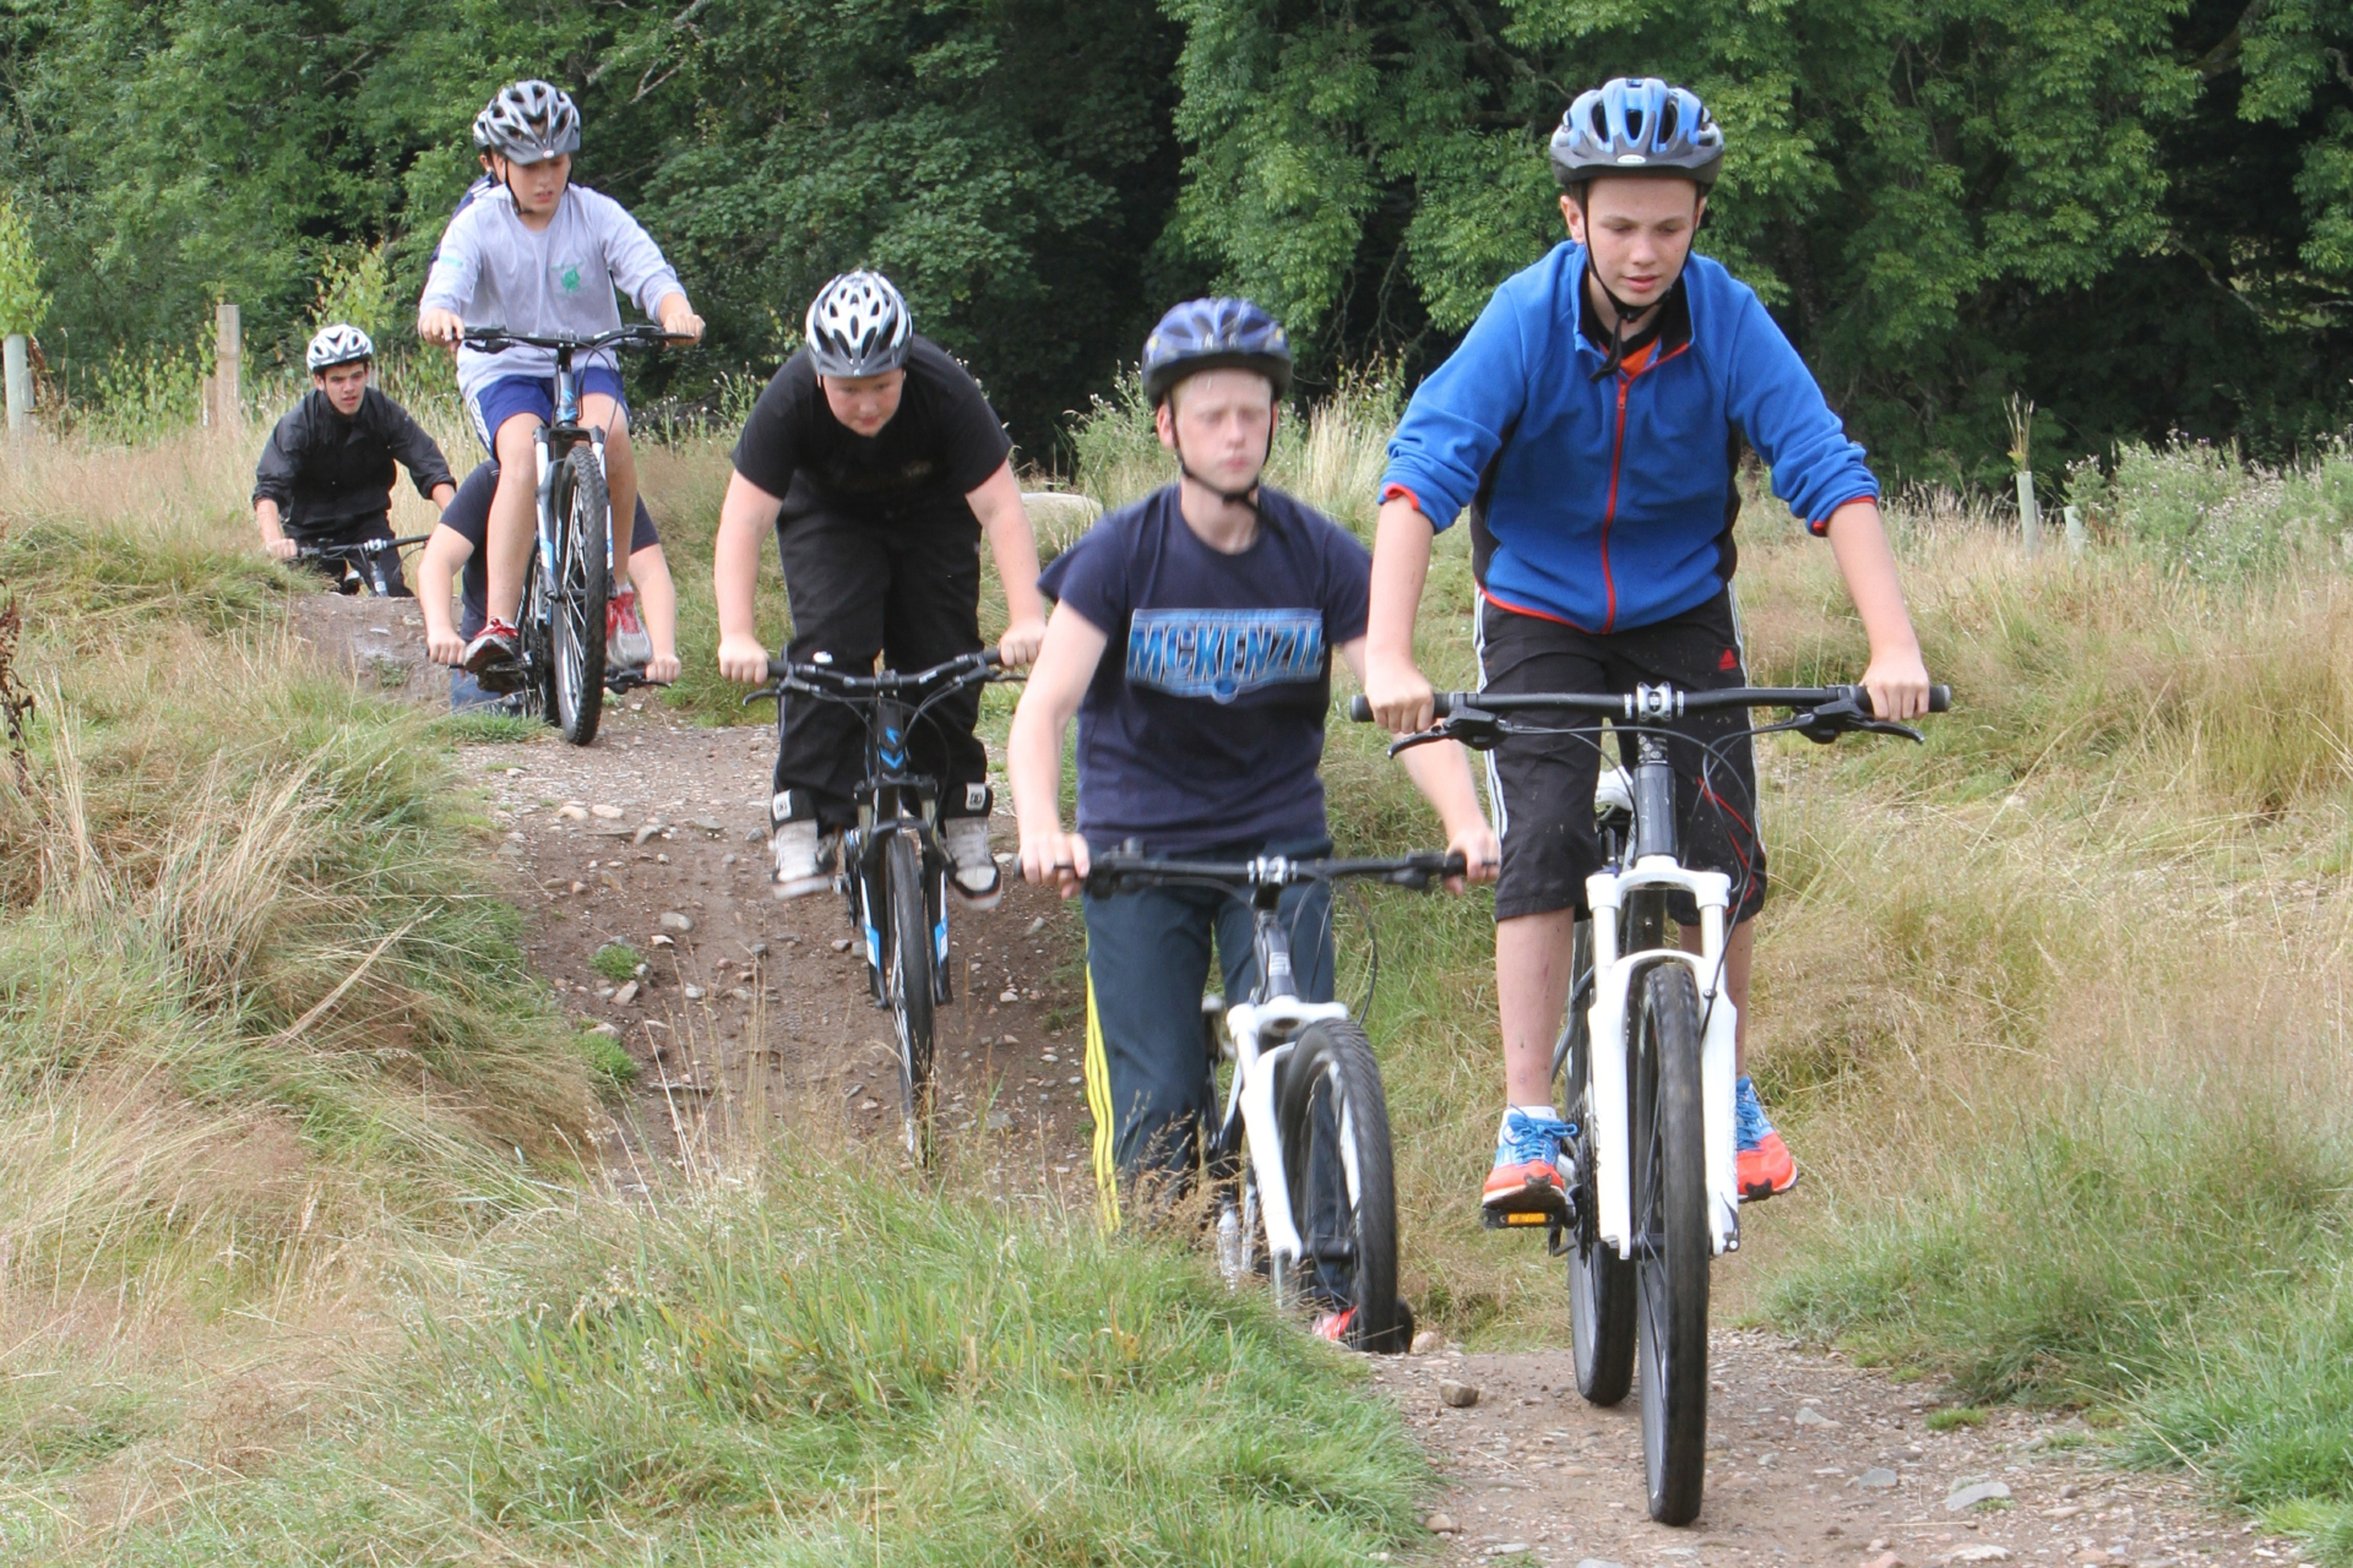 Kids taking part in a mountain bike challenge at last year's Cream o' the Croft festival.